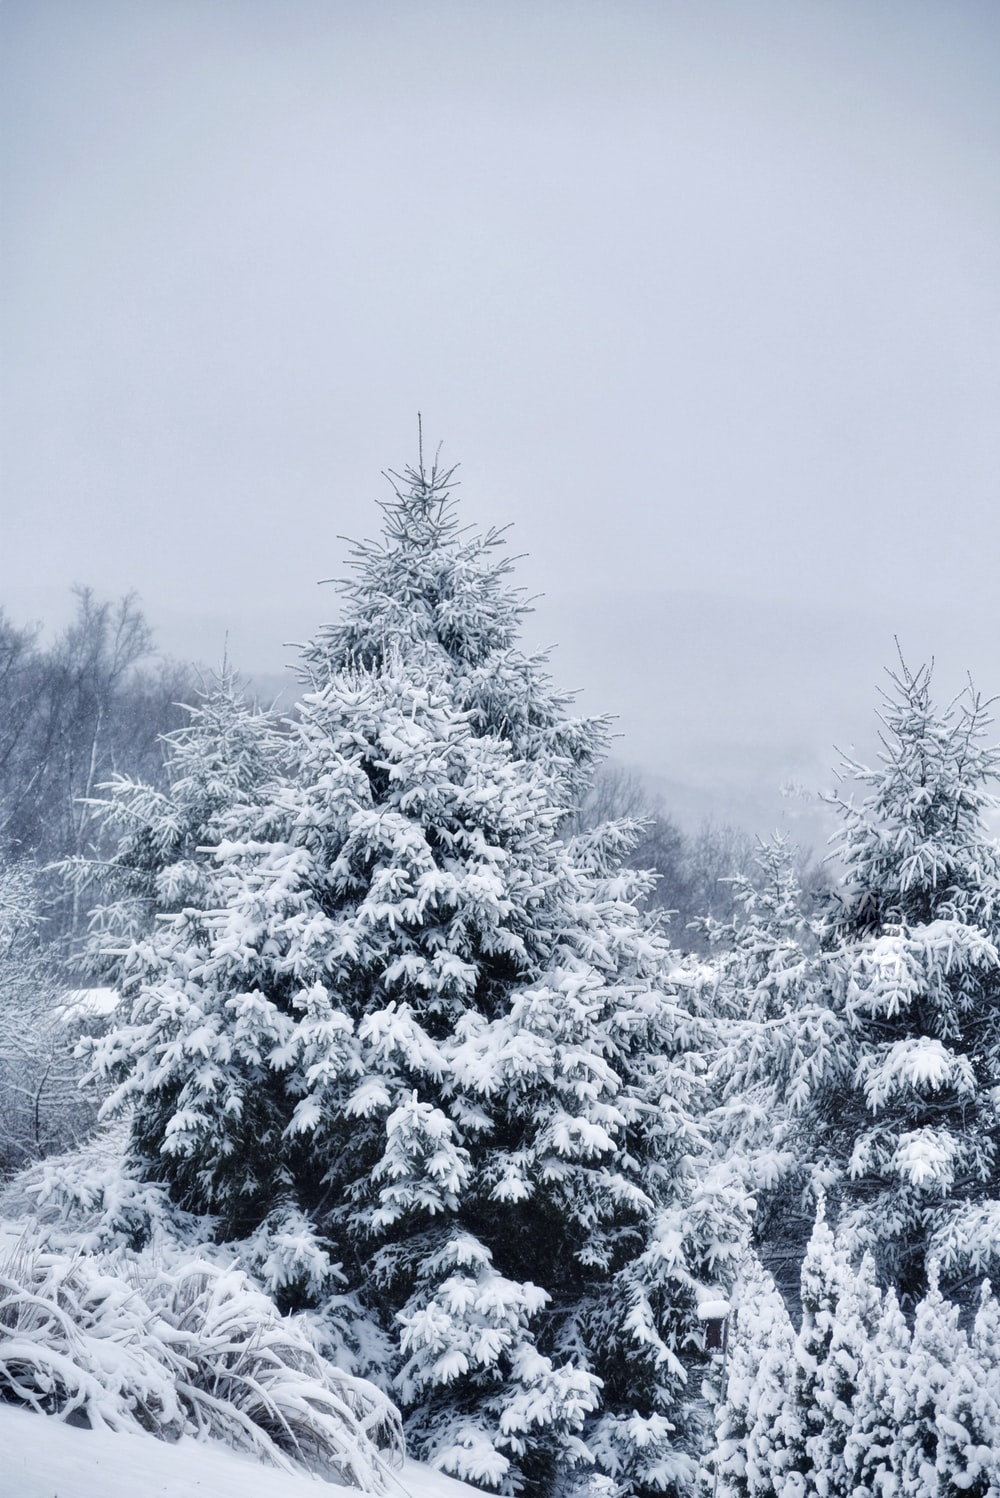 Pine tree icy covered scenery